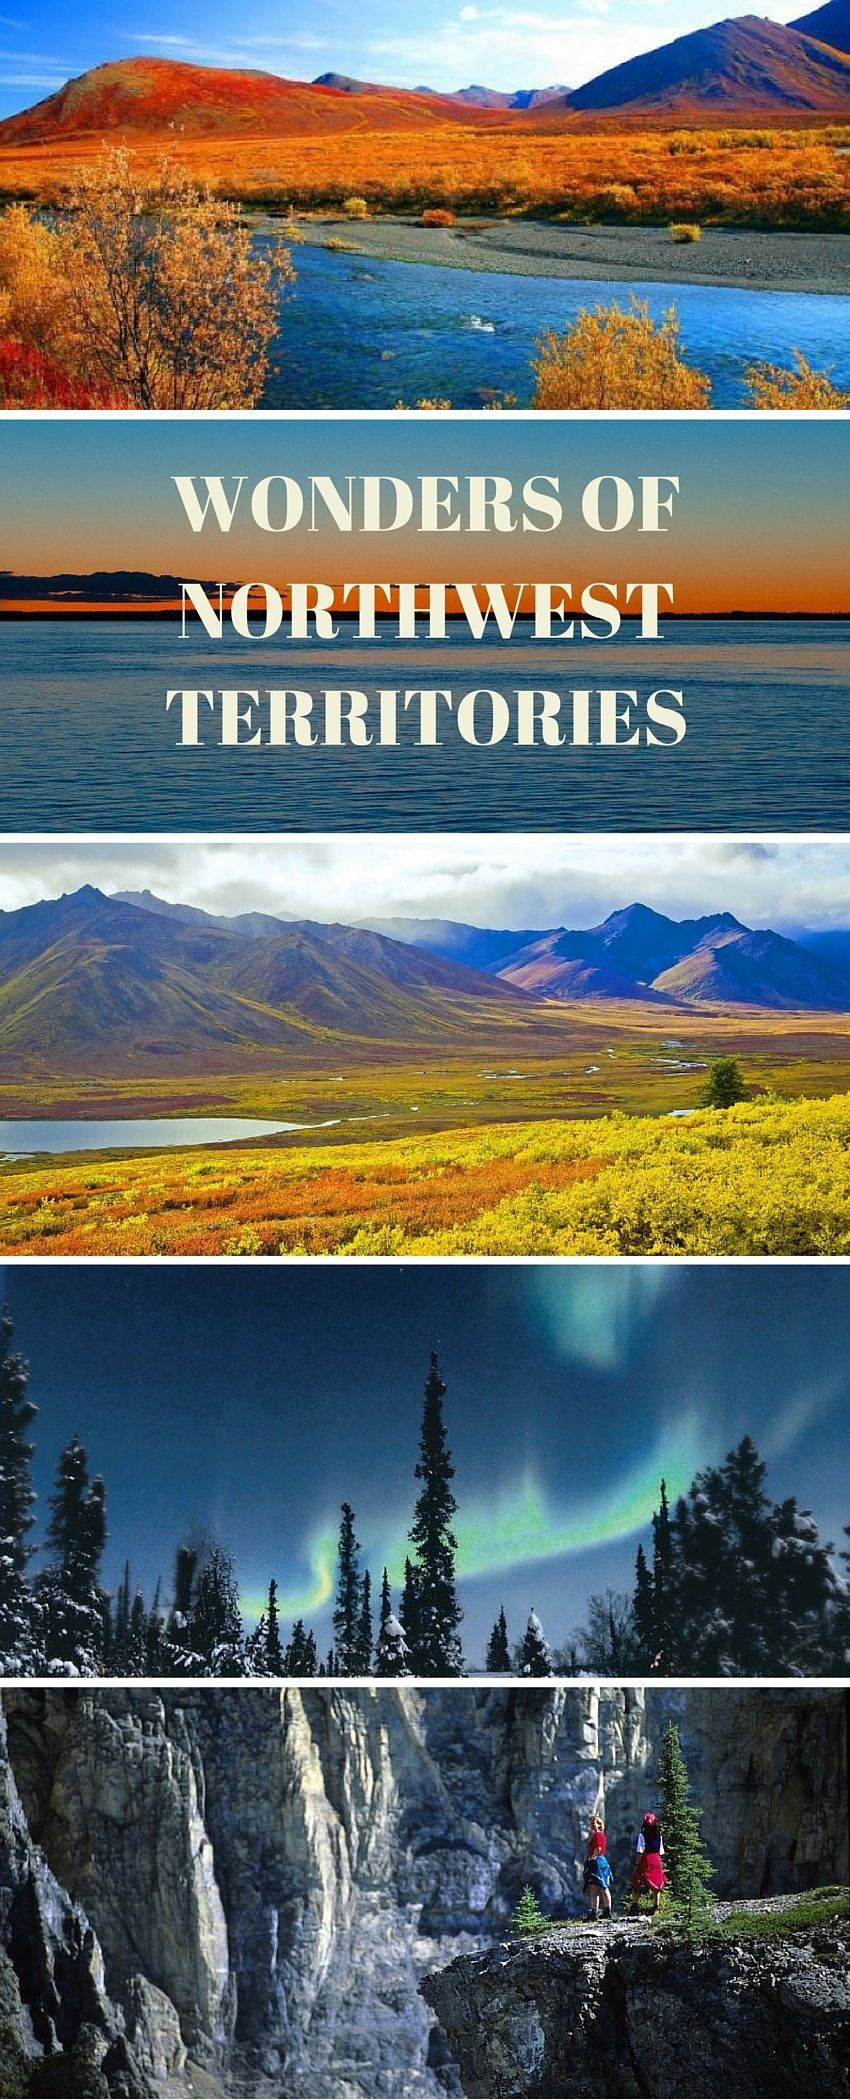 7 Wonders of Northwest Territories, Canada